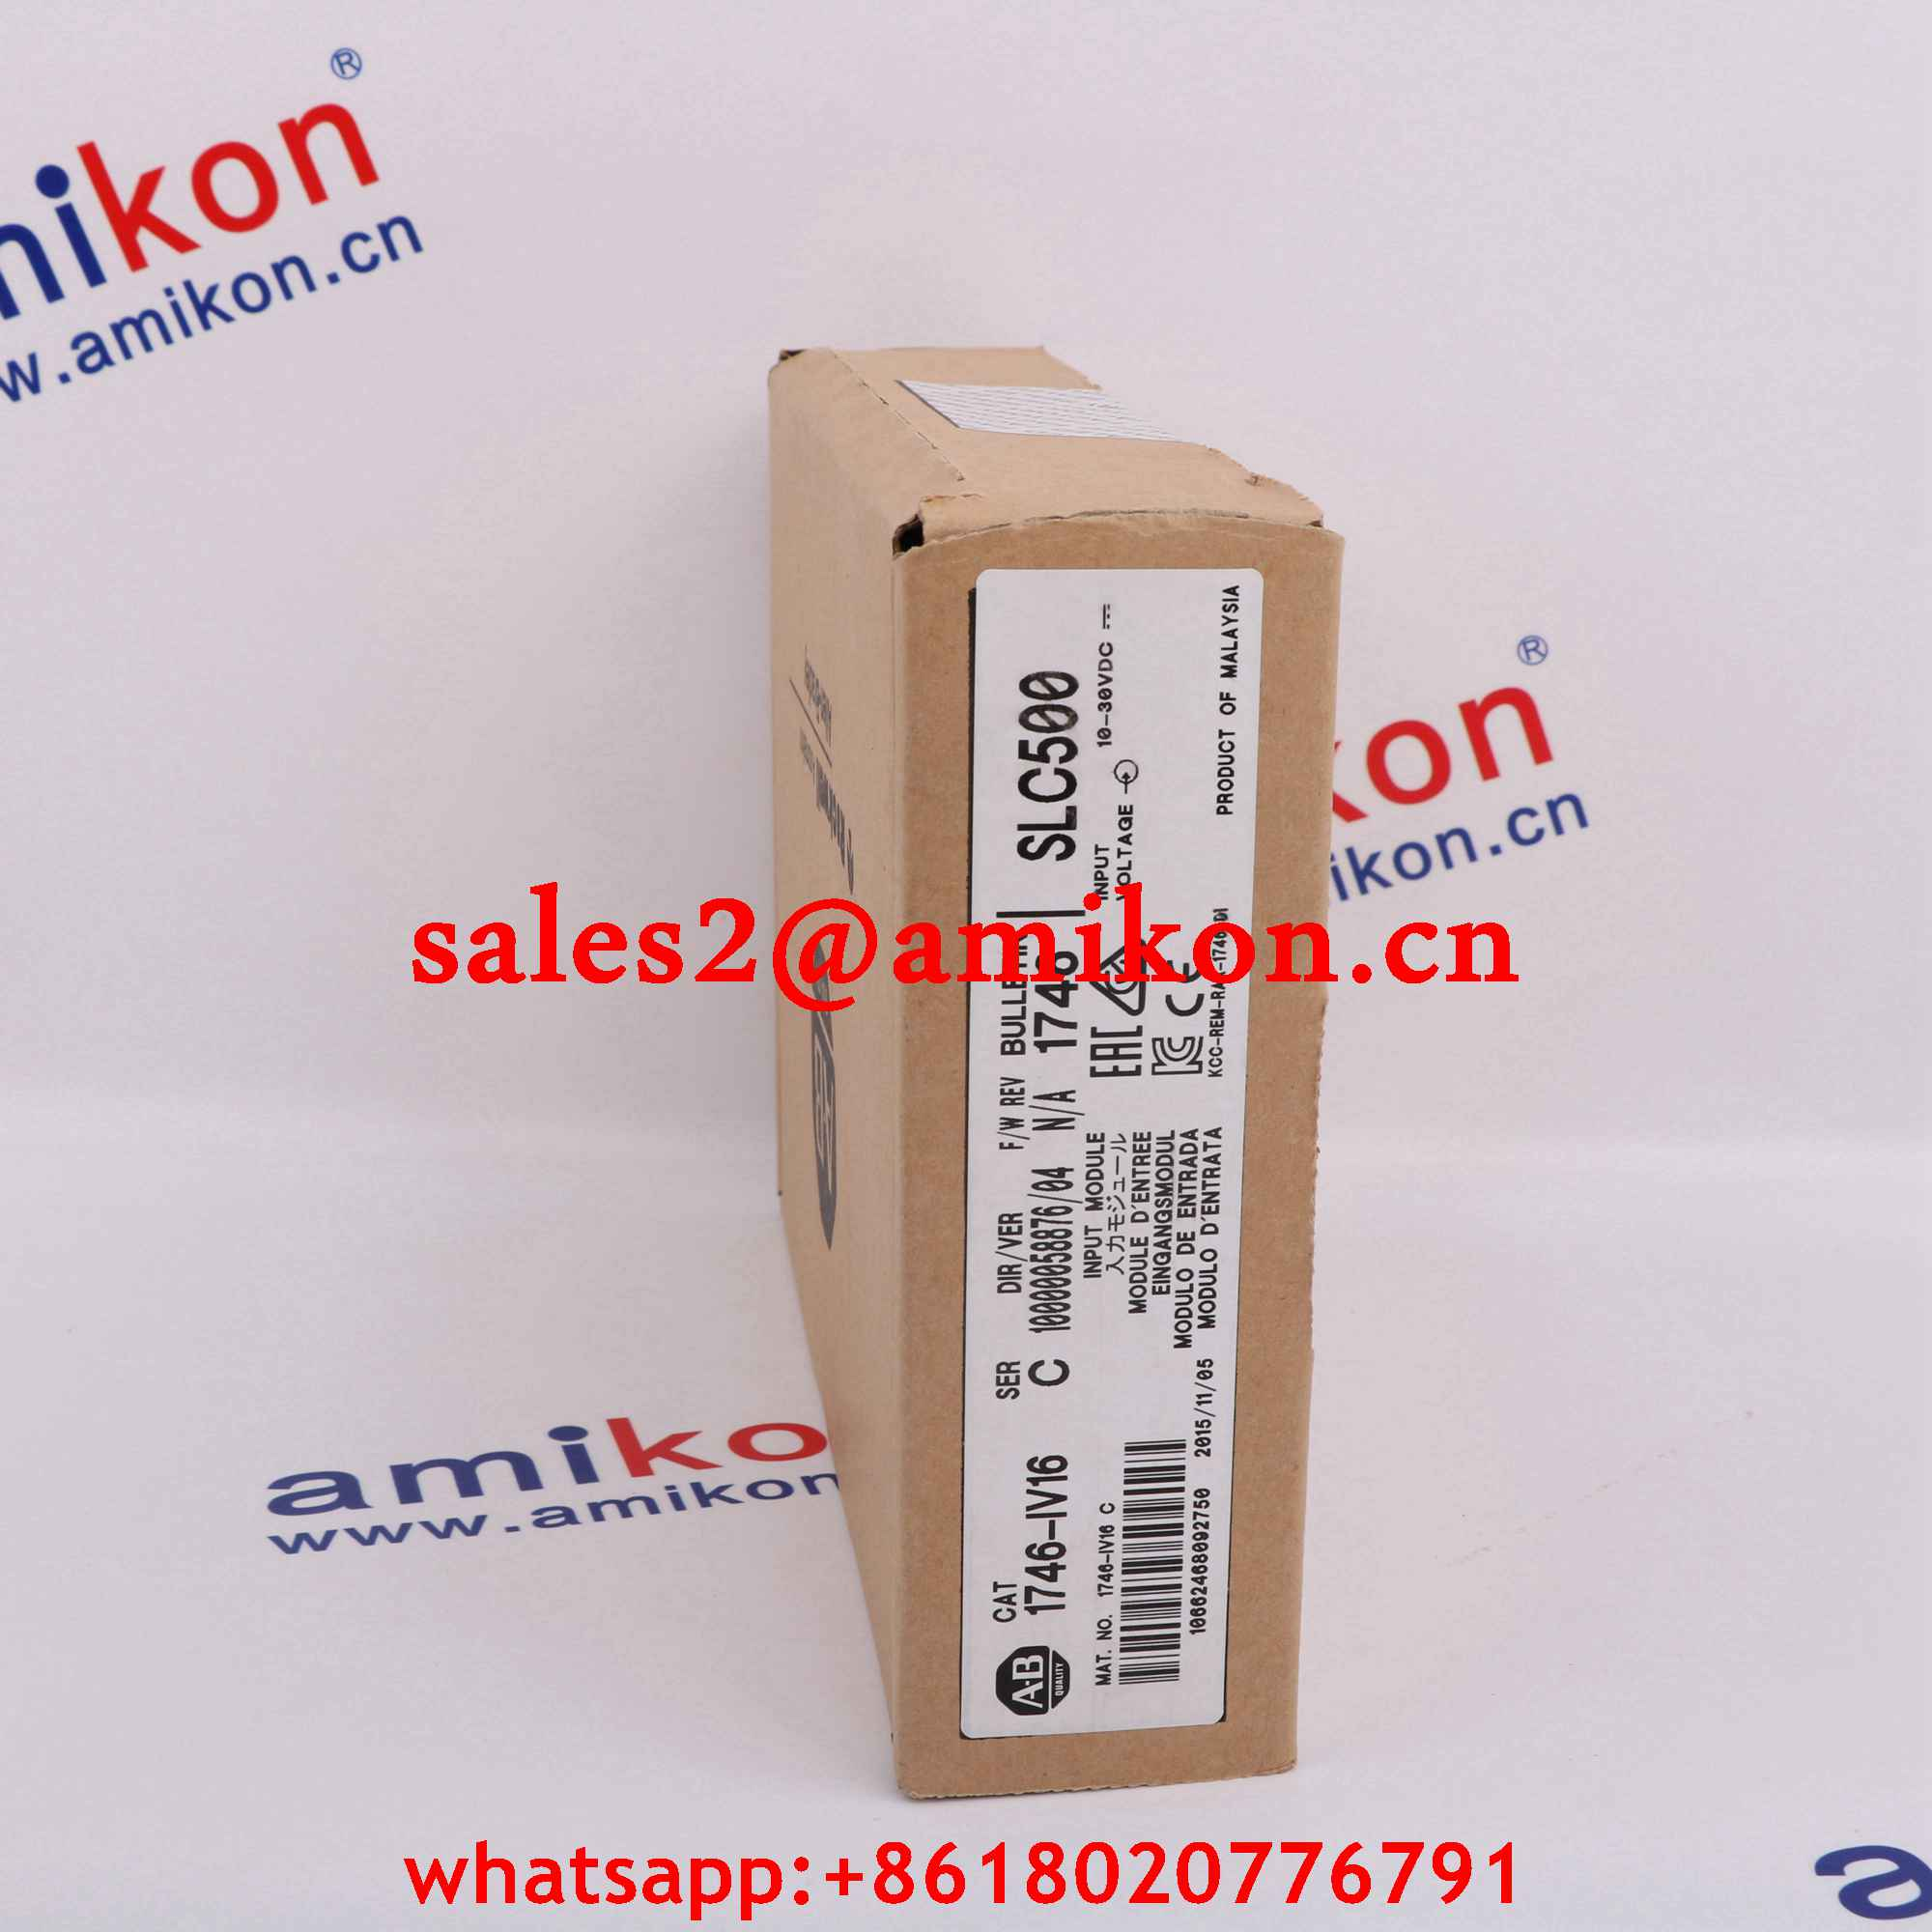 EMERSON WESTINGHOUSE/OVATION 5X00226G01 NEW IN STOCK DISOUNT SALE